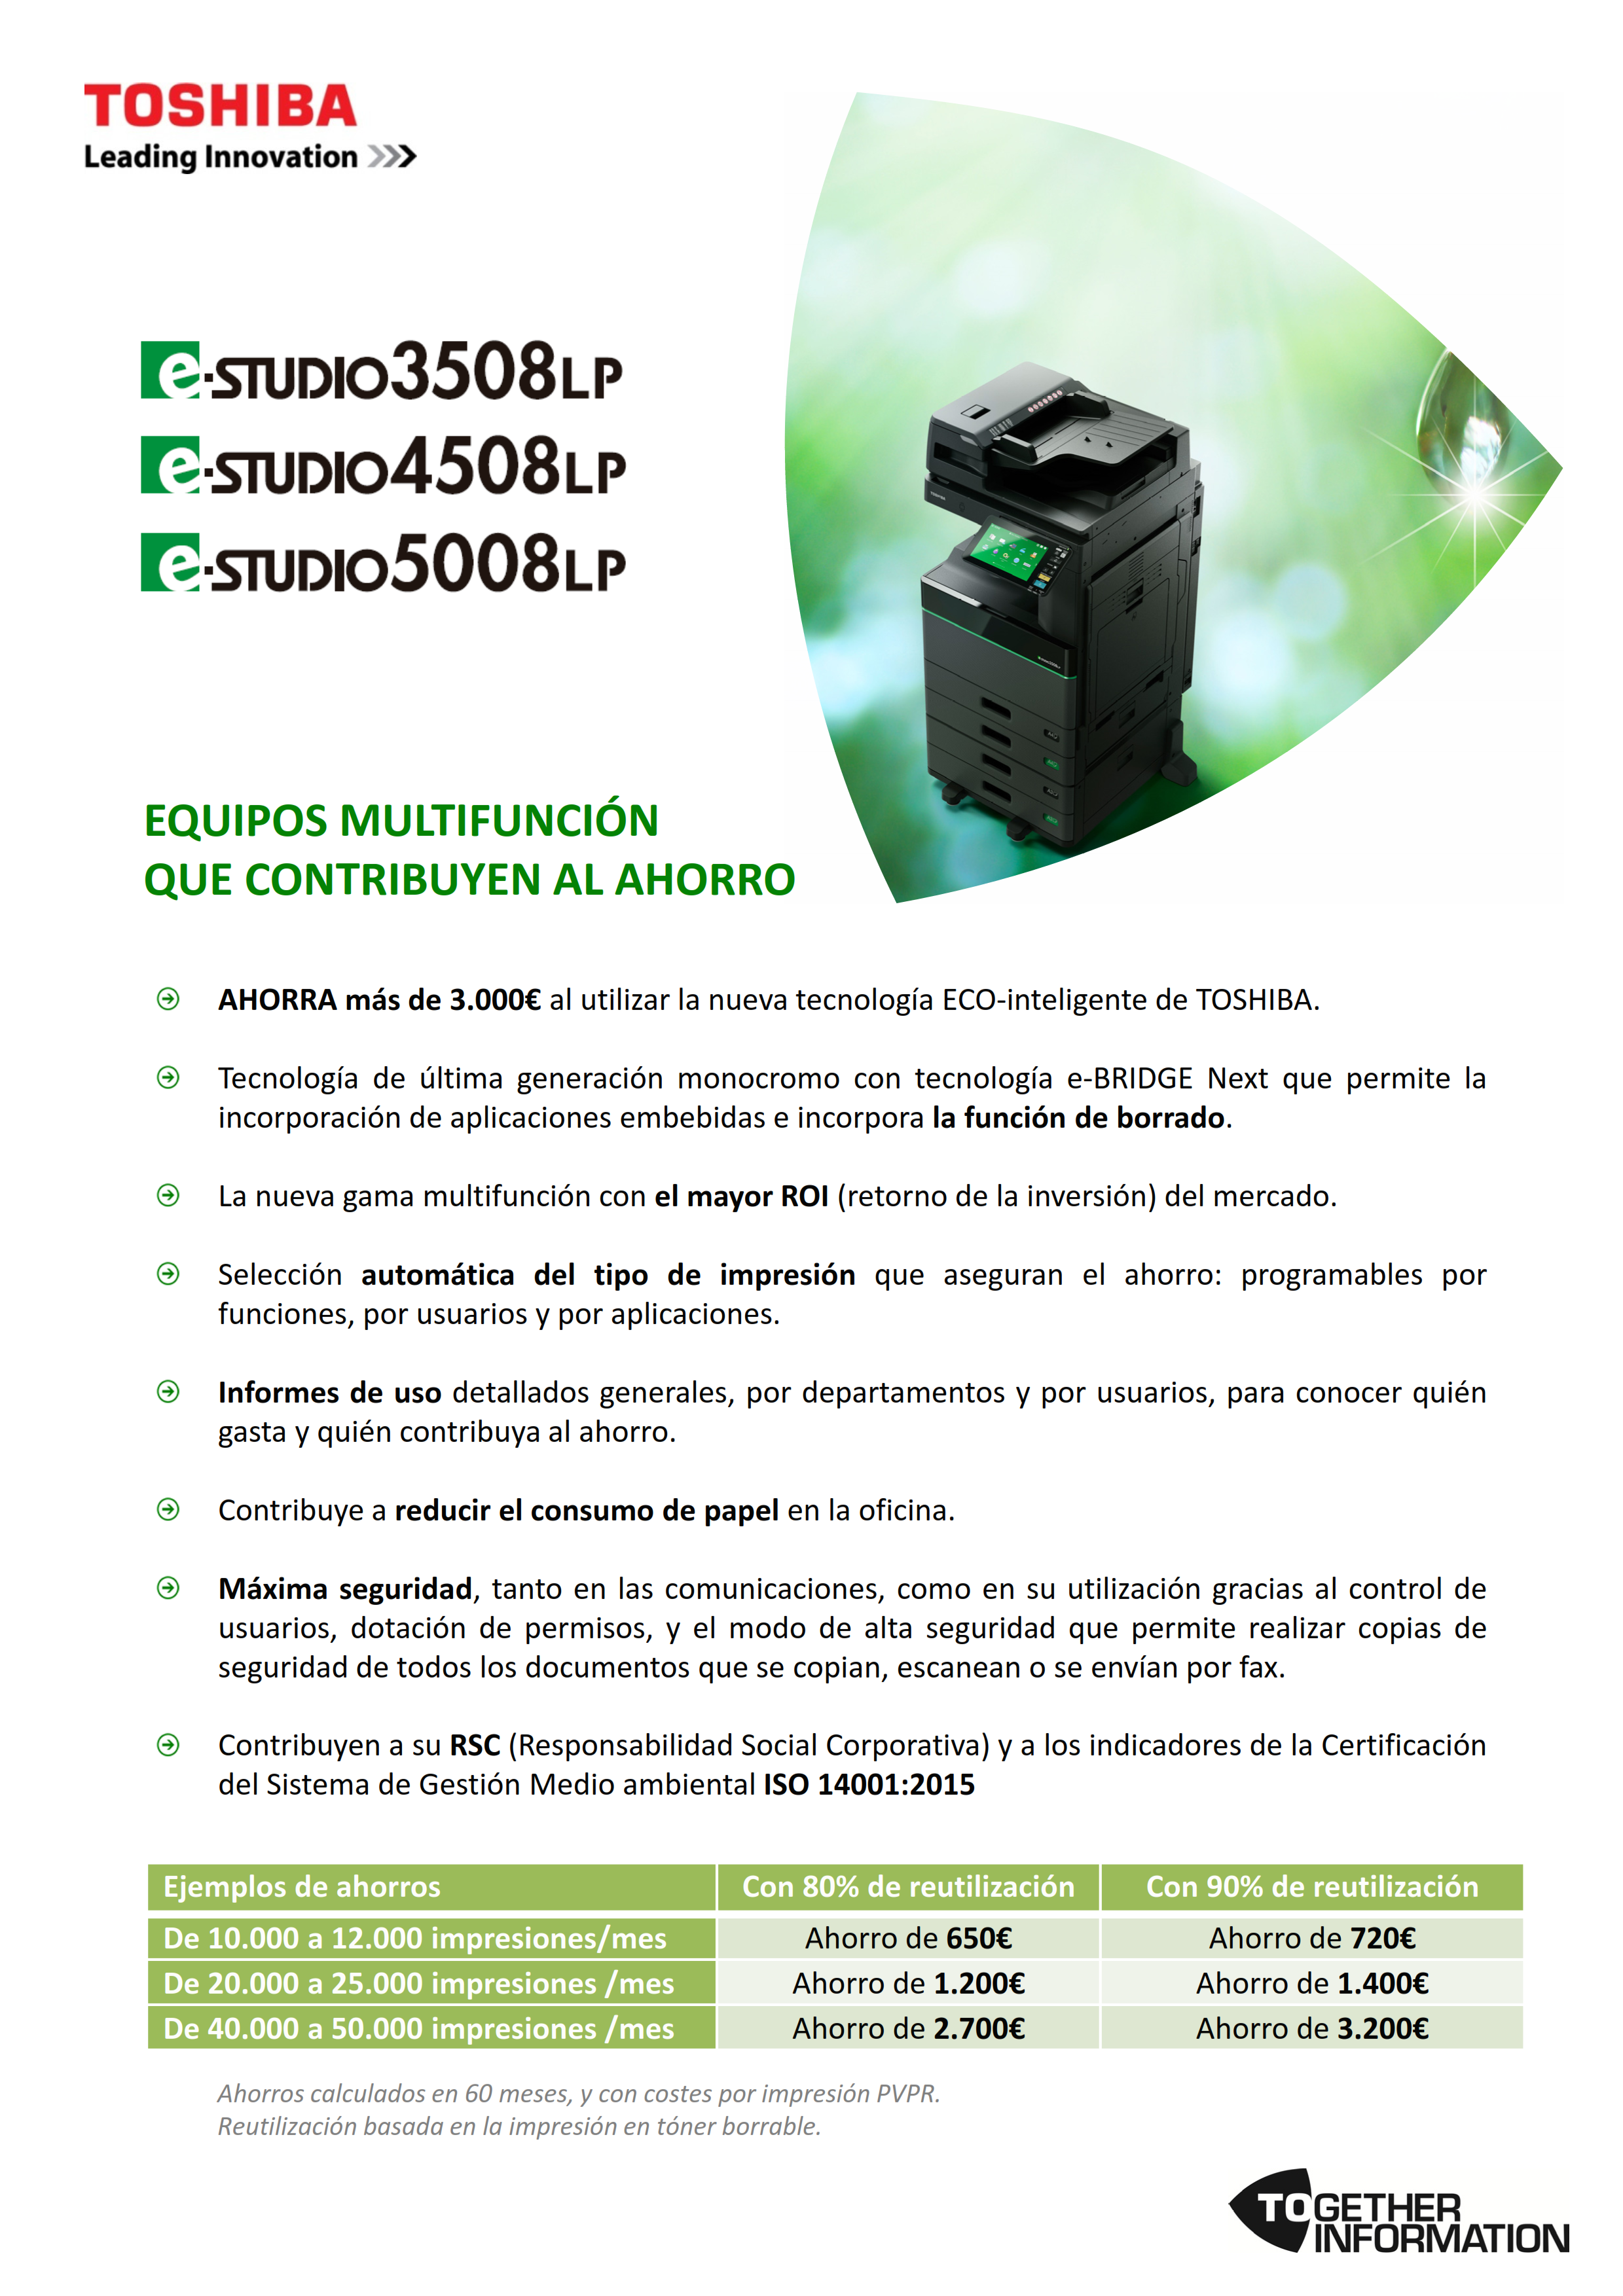 Catalogo ECO-inteligente v1_001.png